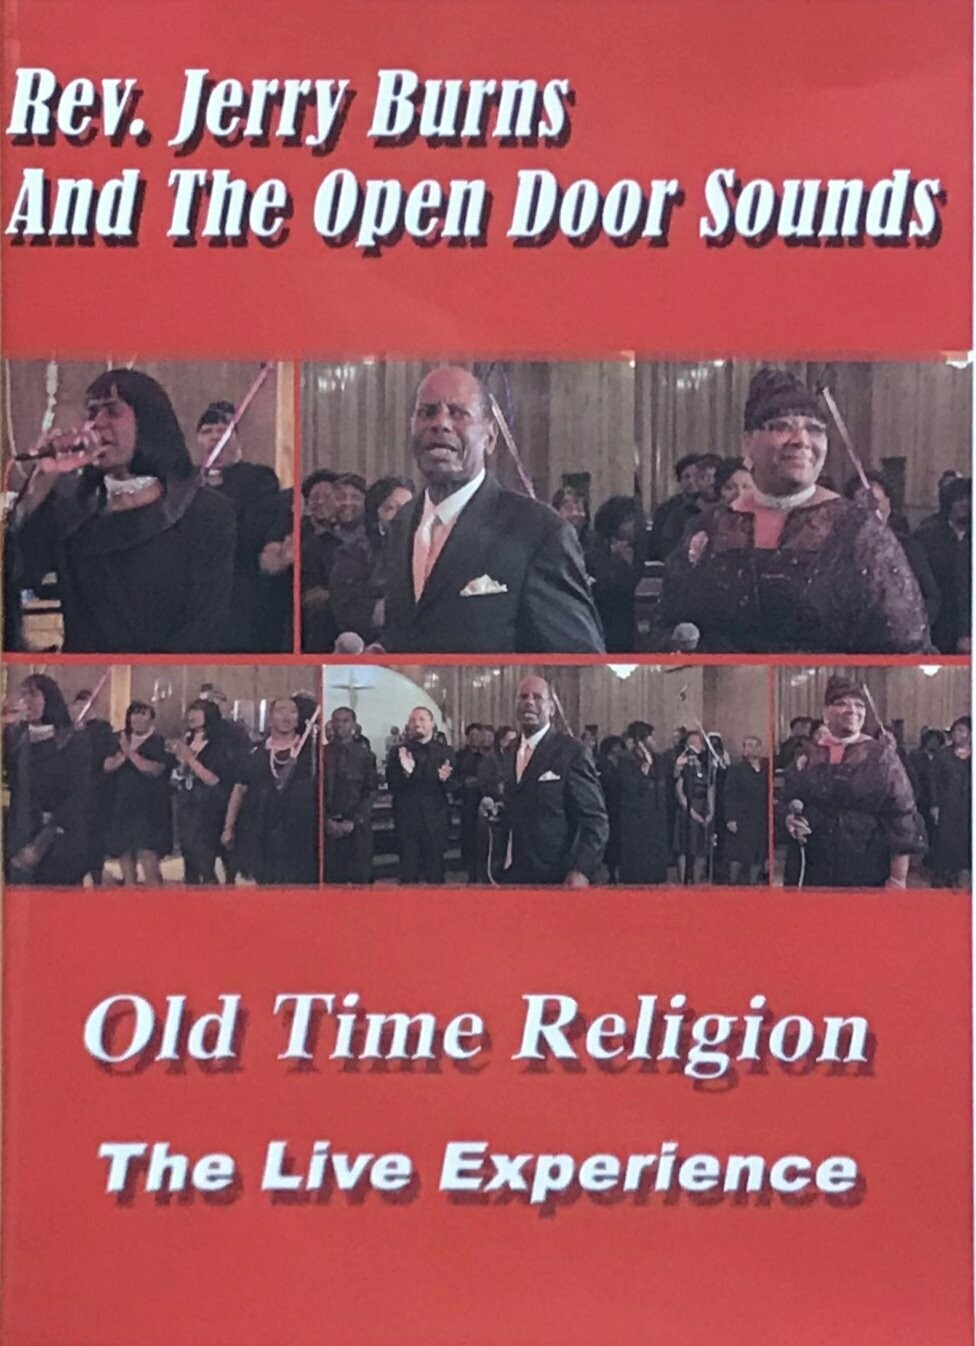 Rev. Jerry Burns and The Open Door Sounds  Old Time Religion CD